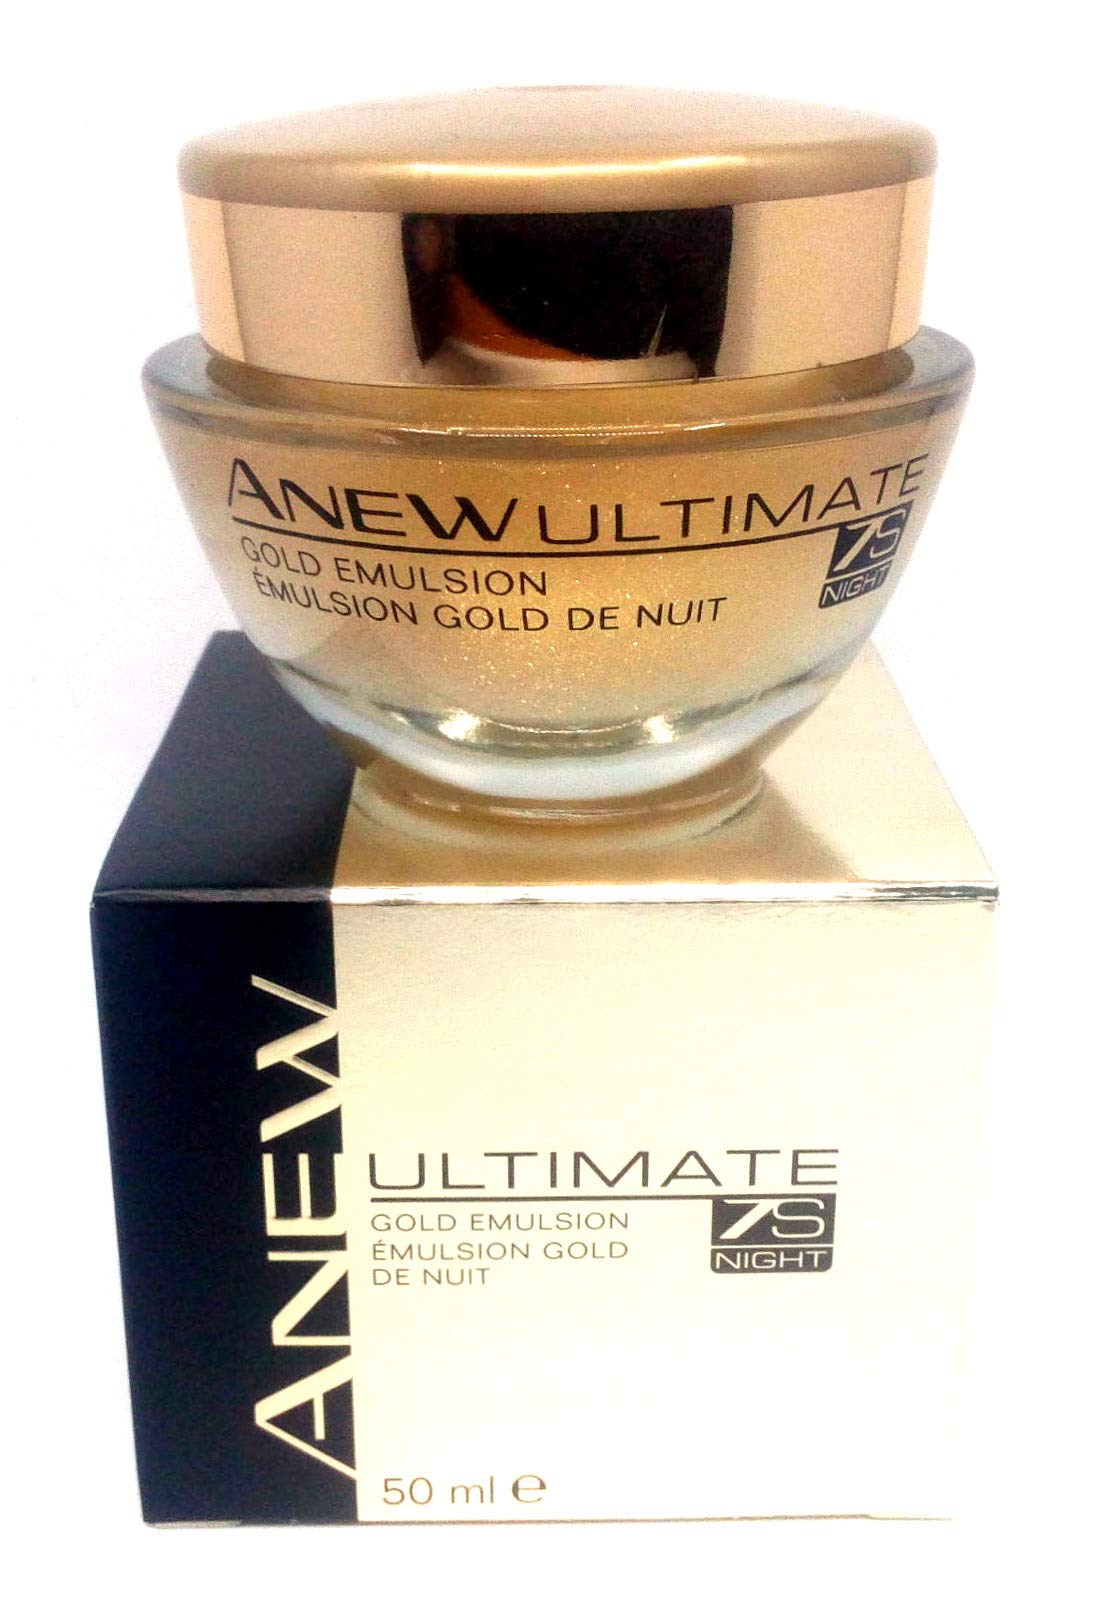 4 x Avon Anew Ultimate 7S Night Gold Emulsion 50ml Set